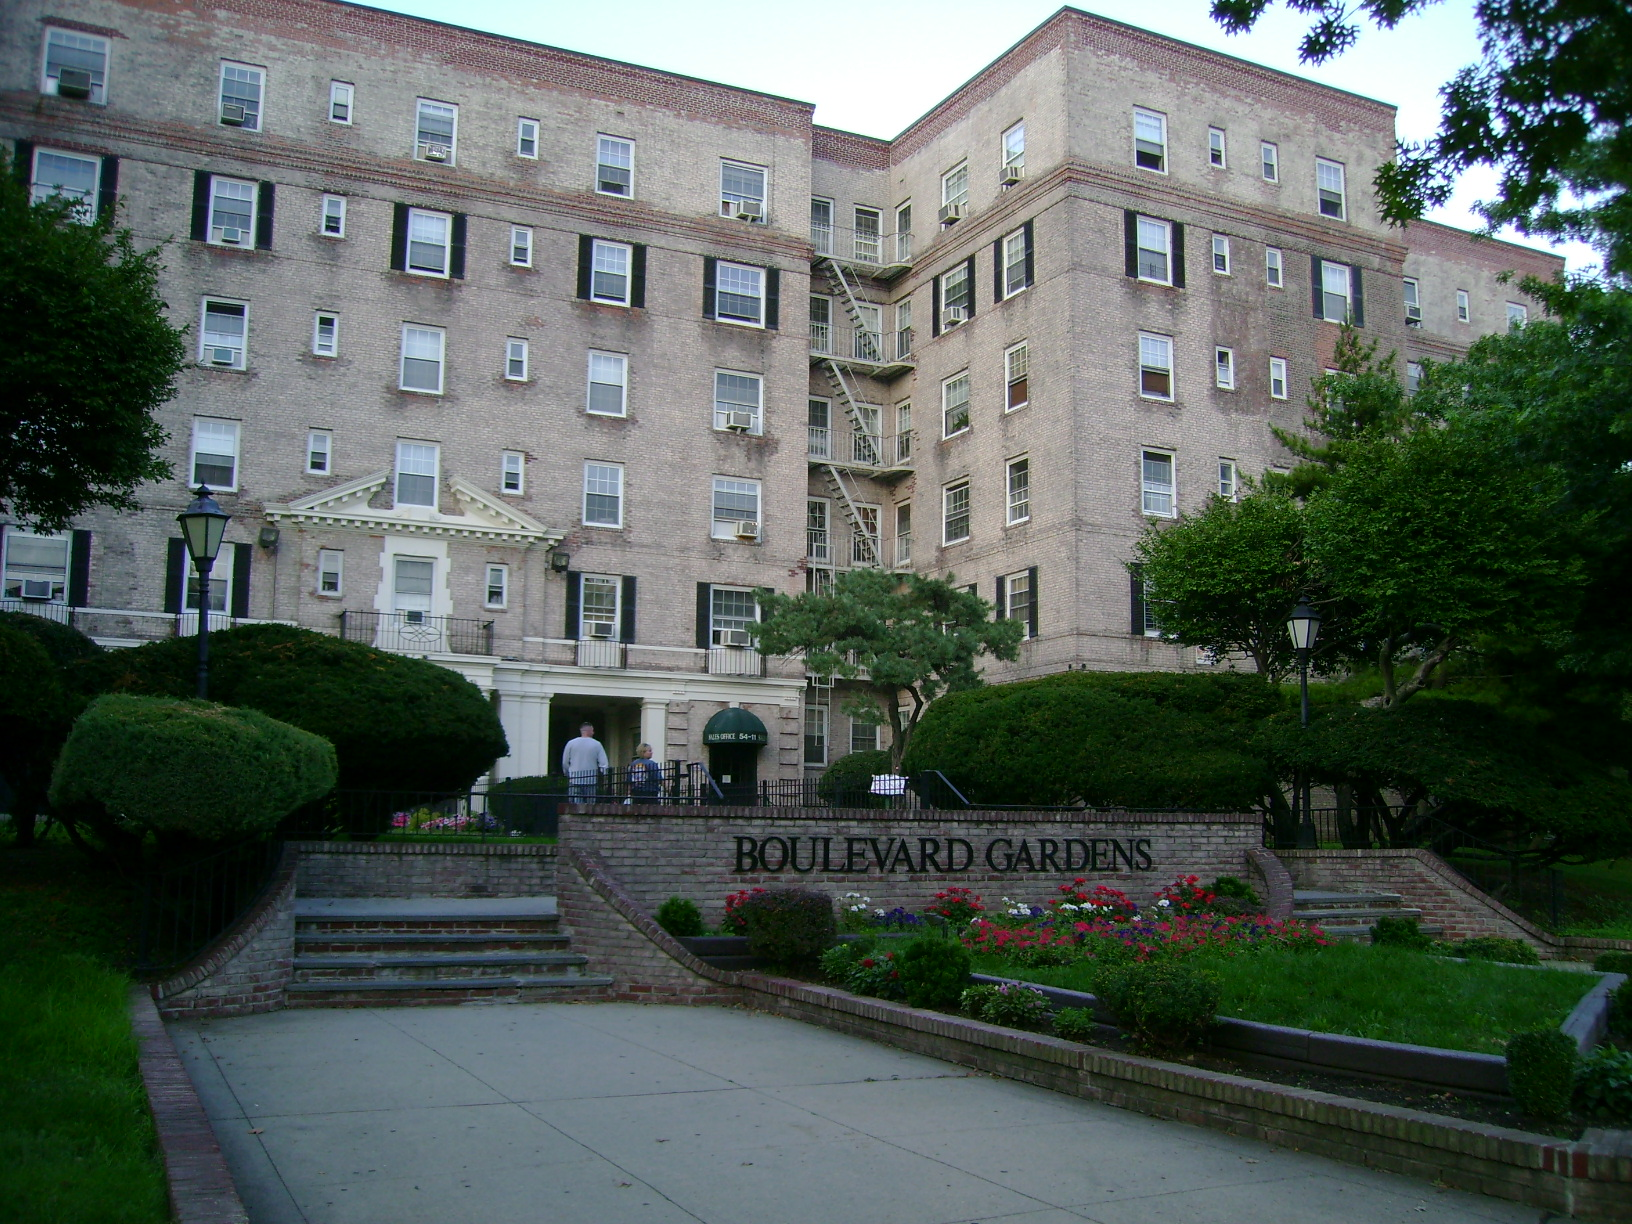 Boulevard Gardens Apartments Wikipedia